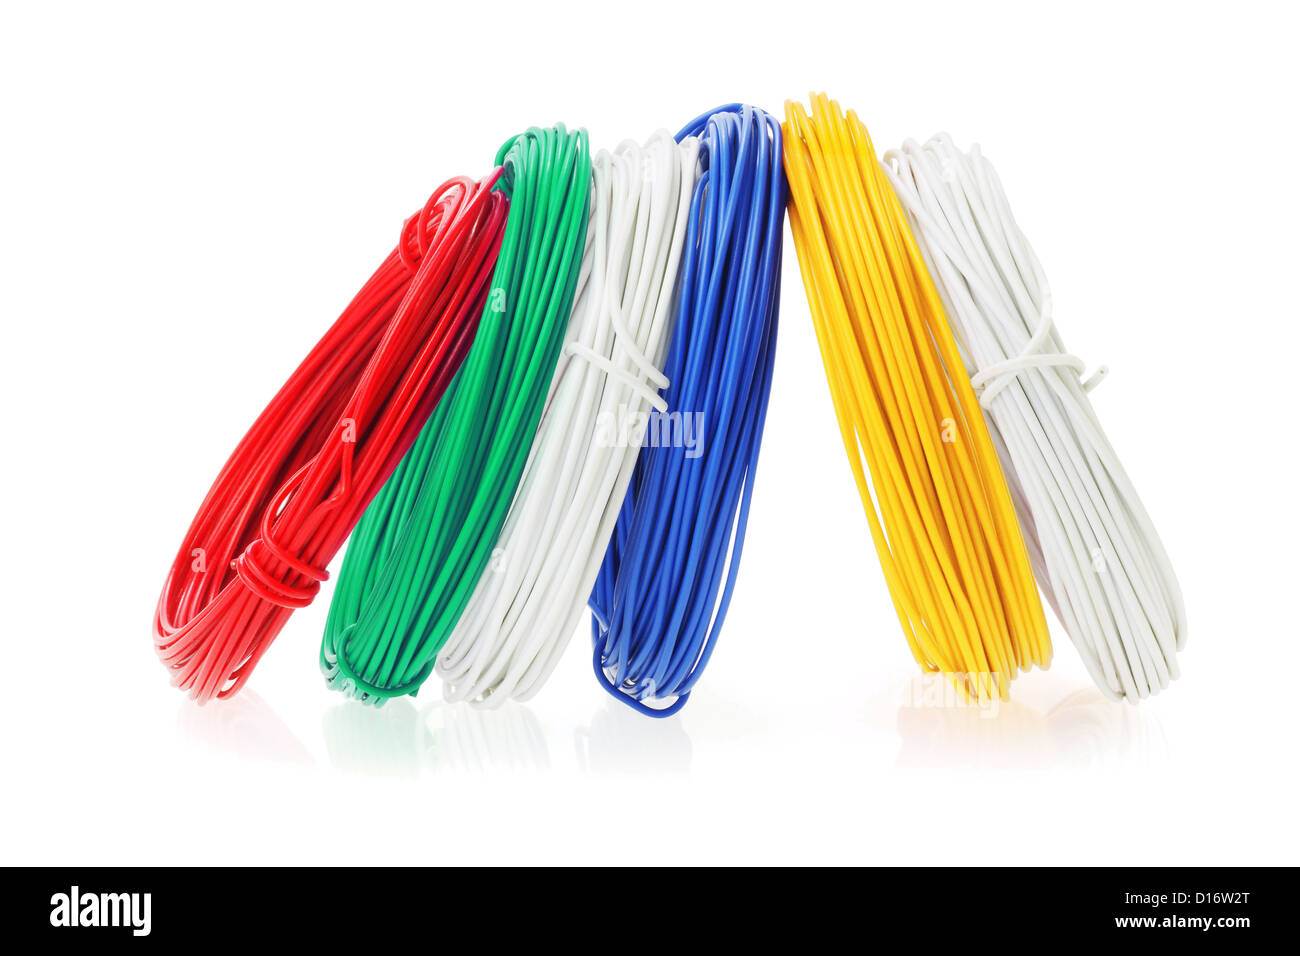 Coils Of Wire Plastic Stock Photos Amp Coils Of Wire Plastic